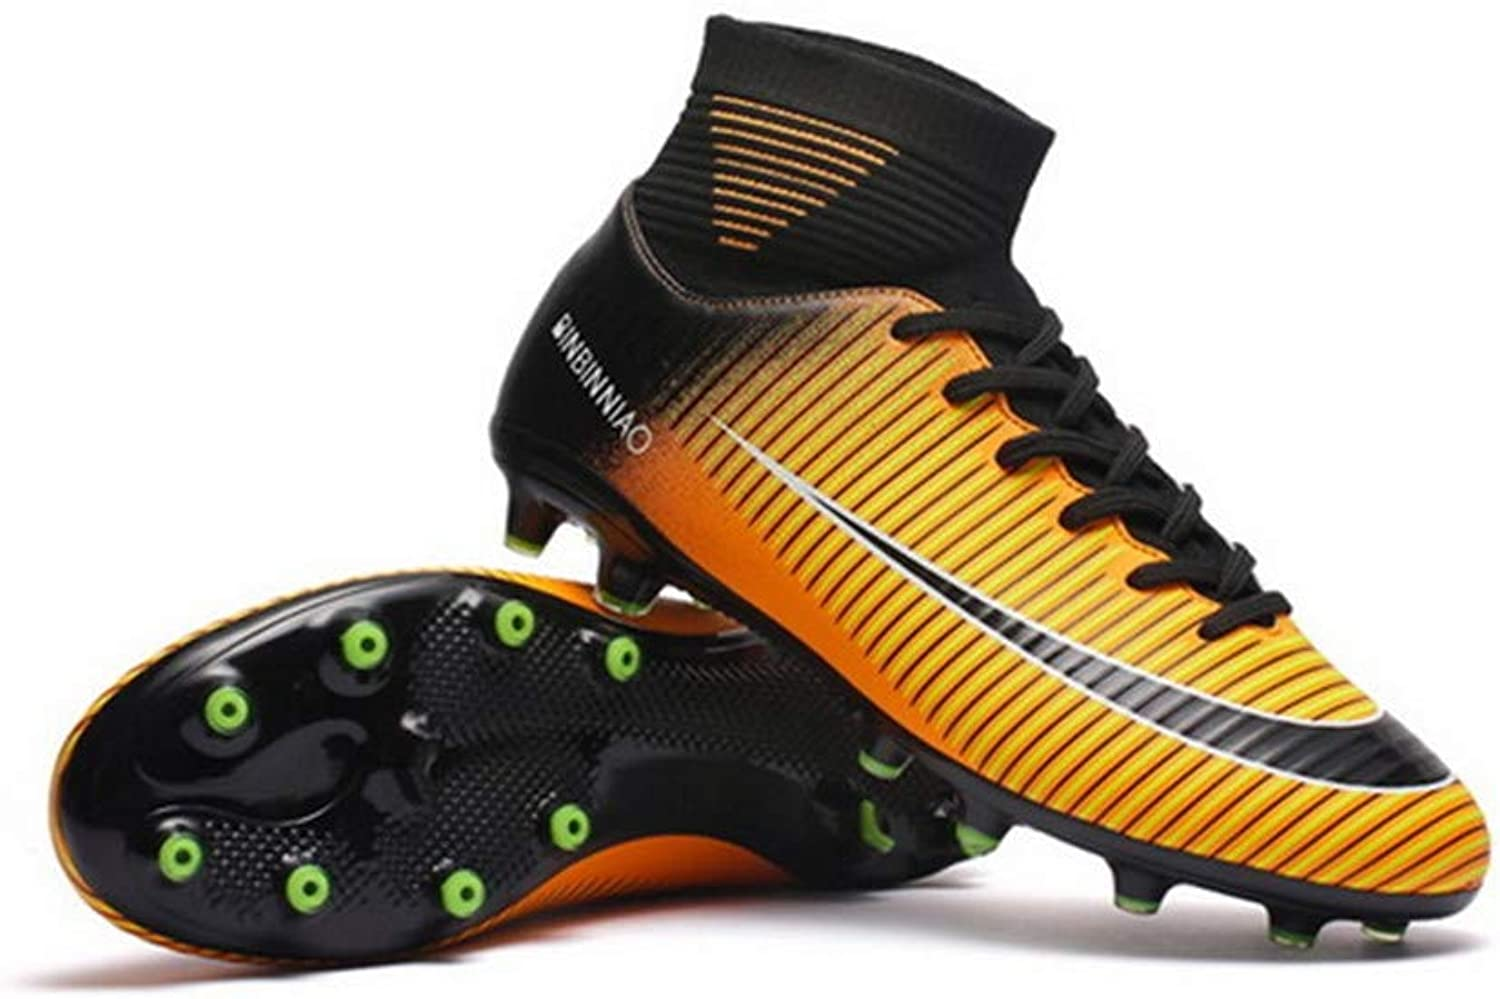 Julitia Soccer Boots Sneakers Men Soccer Cleats Original Football with Sports